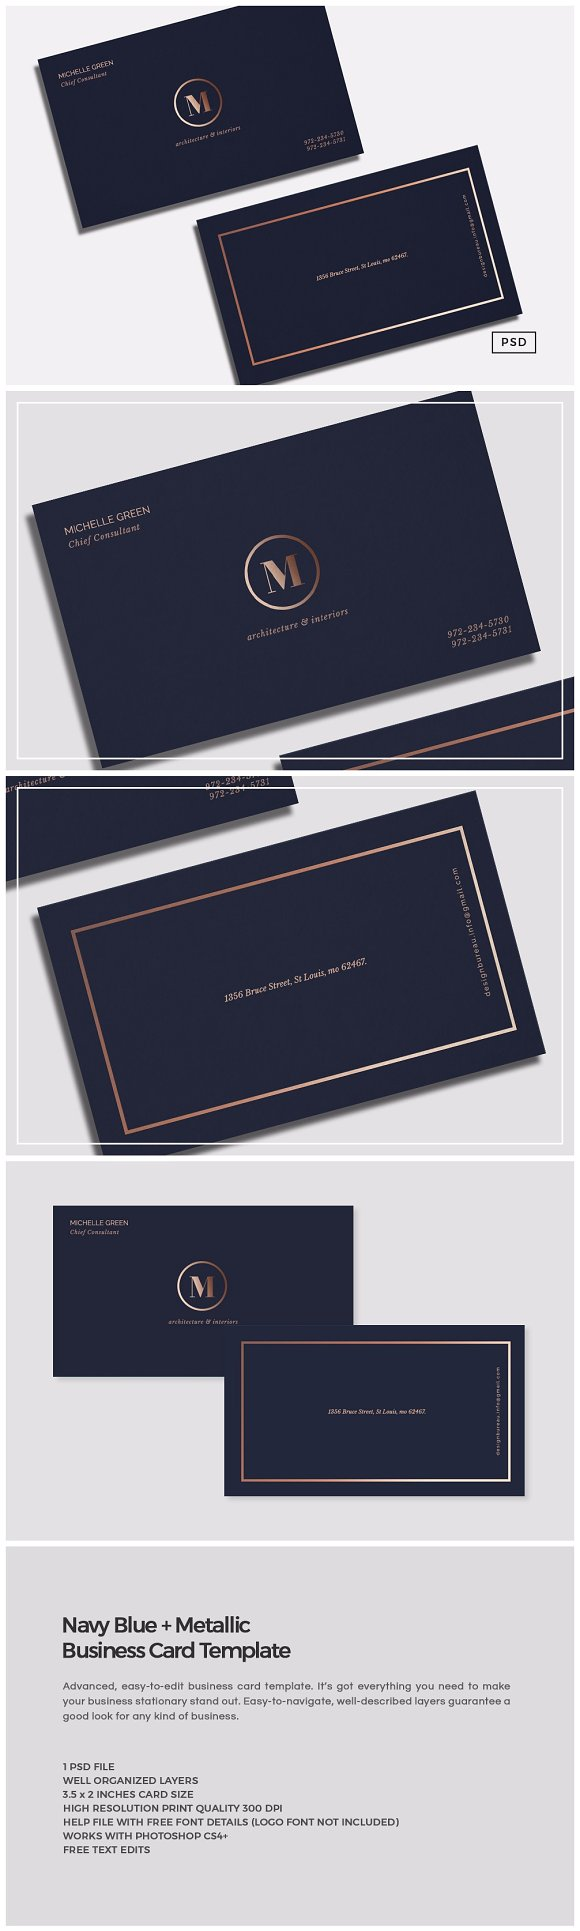 Navy Blue Metallic Business Card ~ Business Card Templates ...